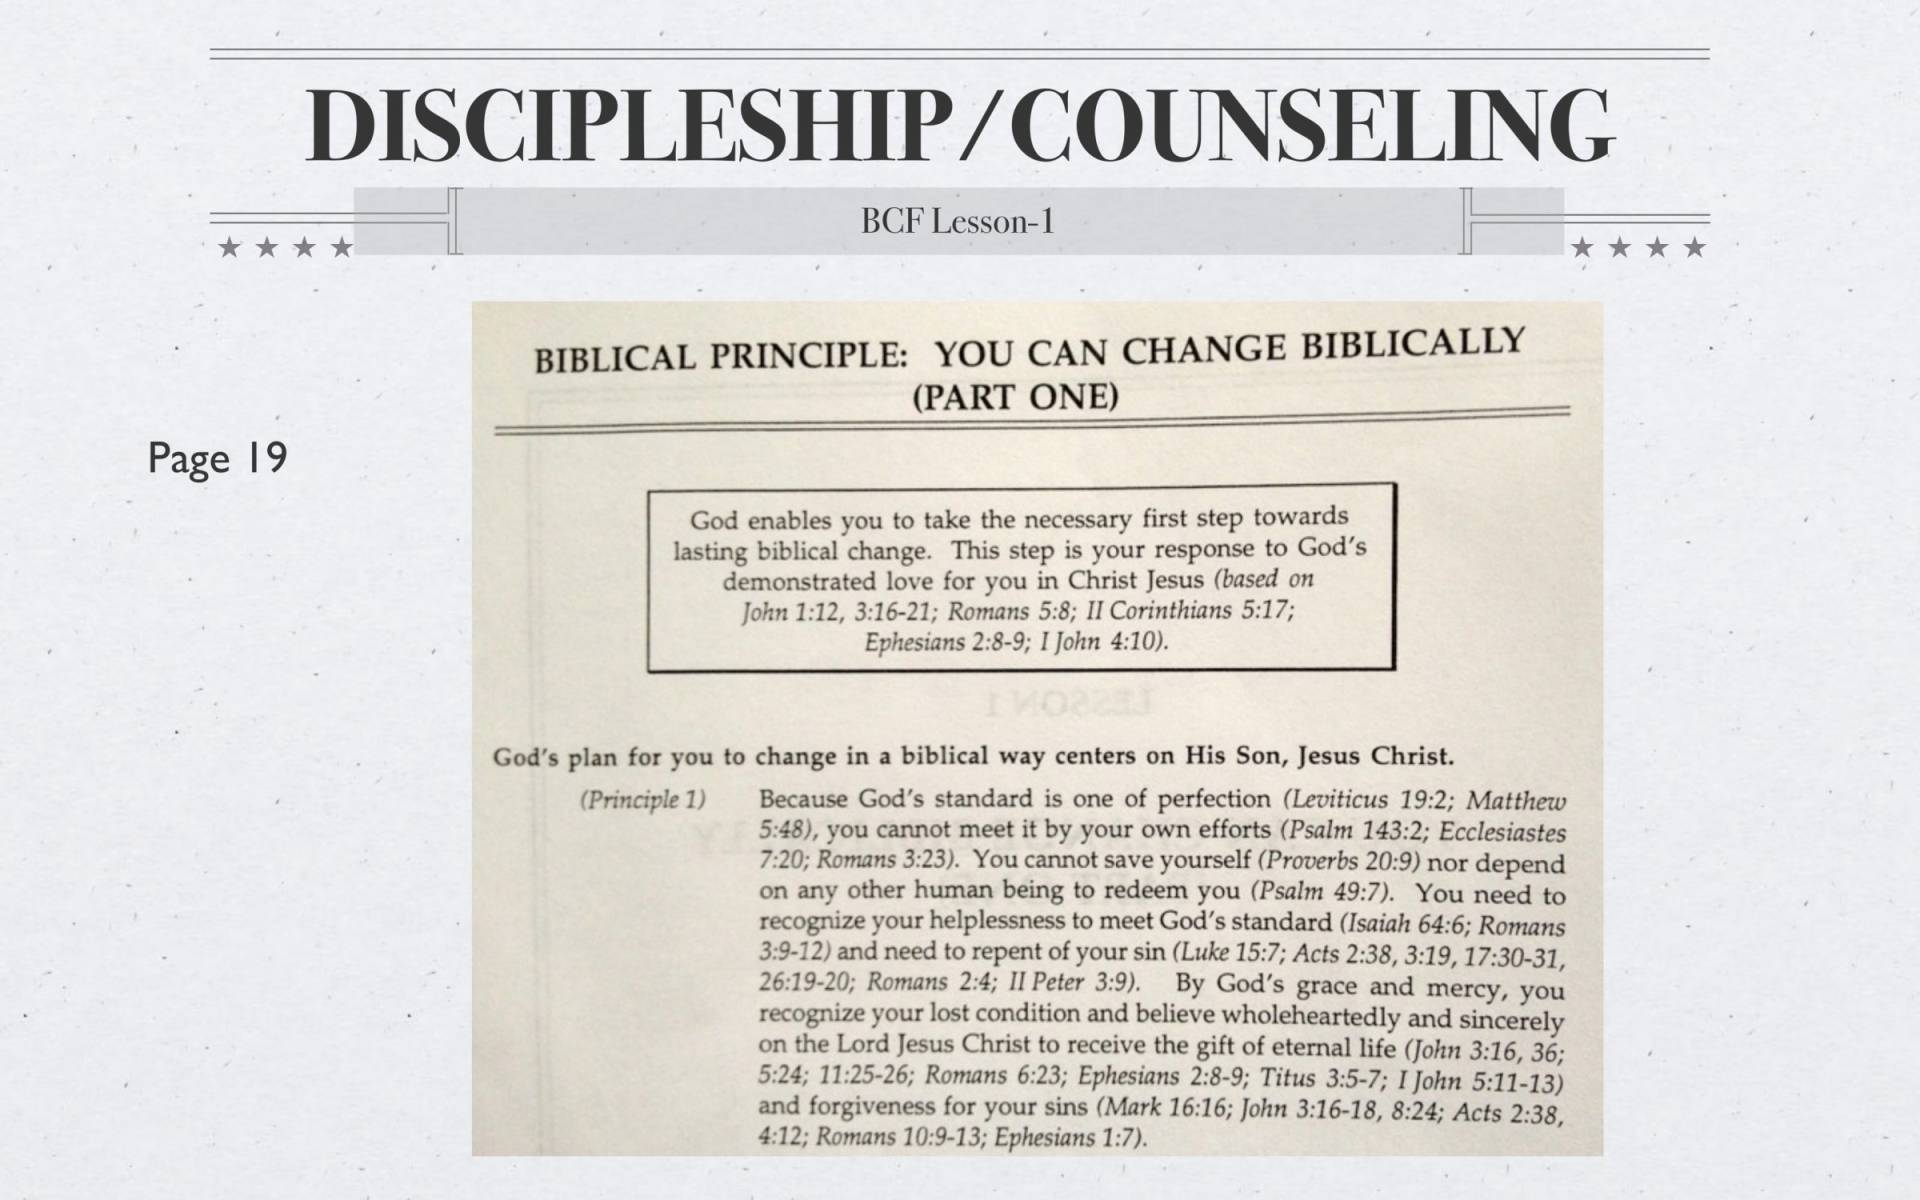 BC&D-04 - How To Focus Your Bible Study Time For Discipleship & Counseling-02